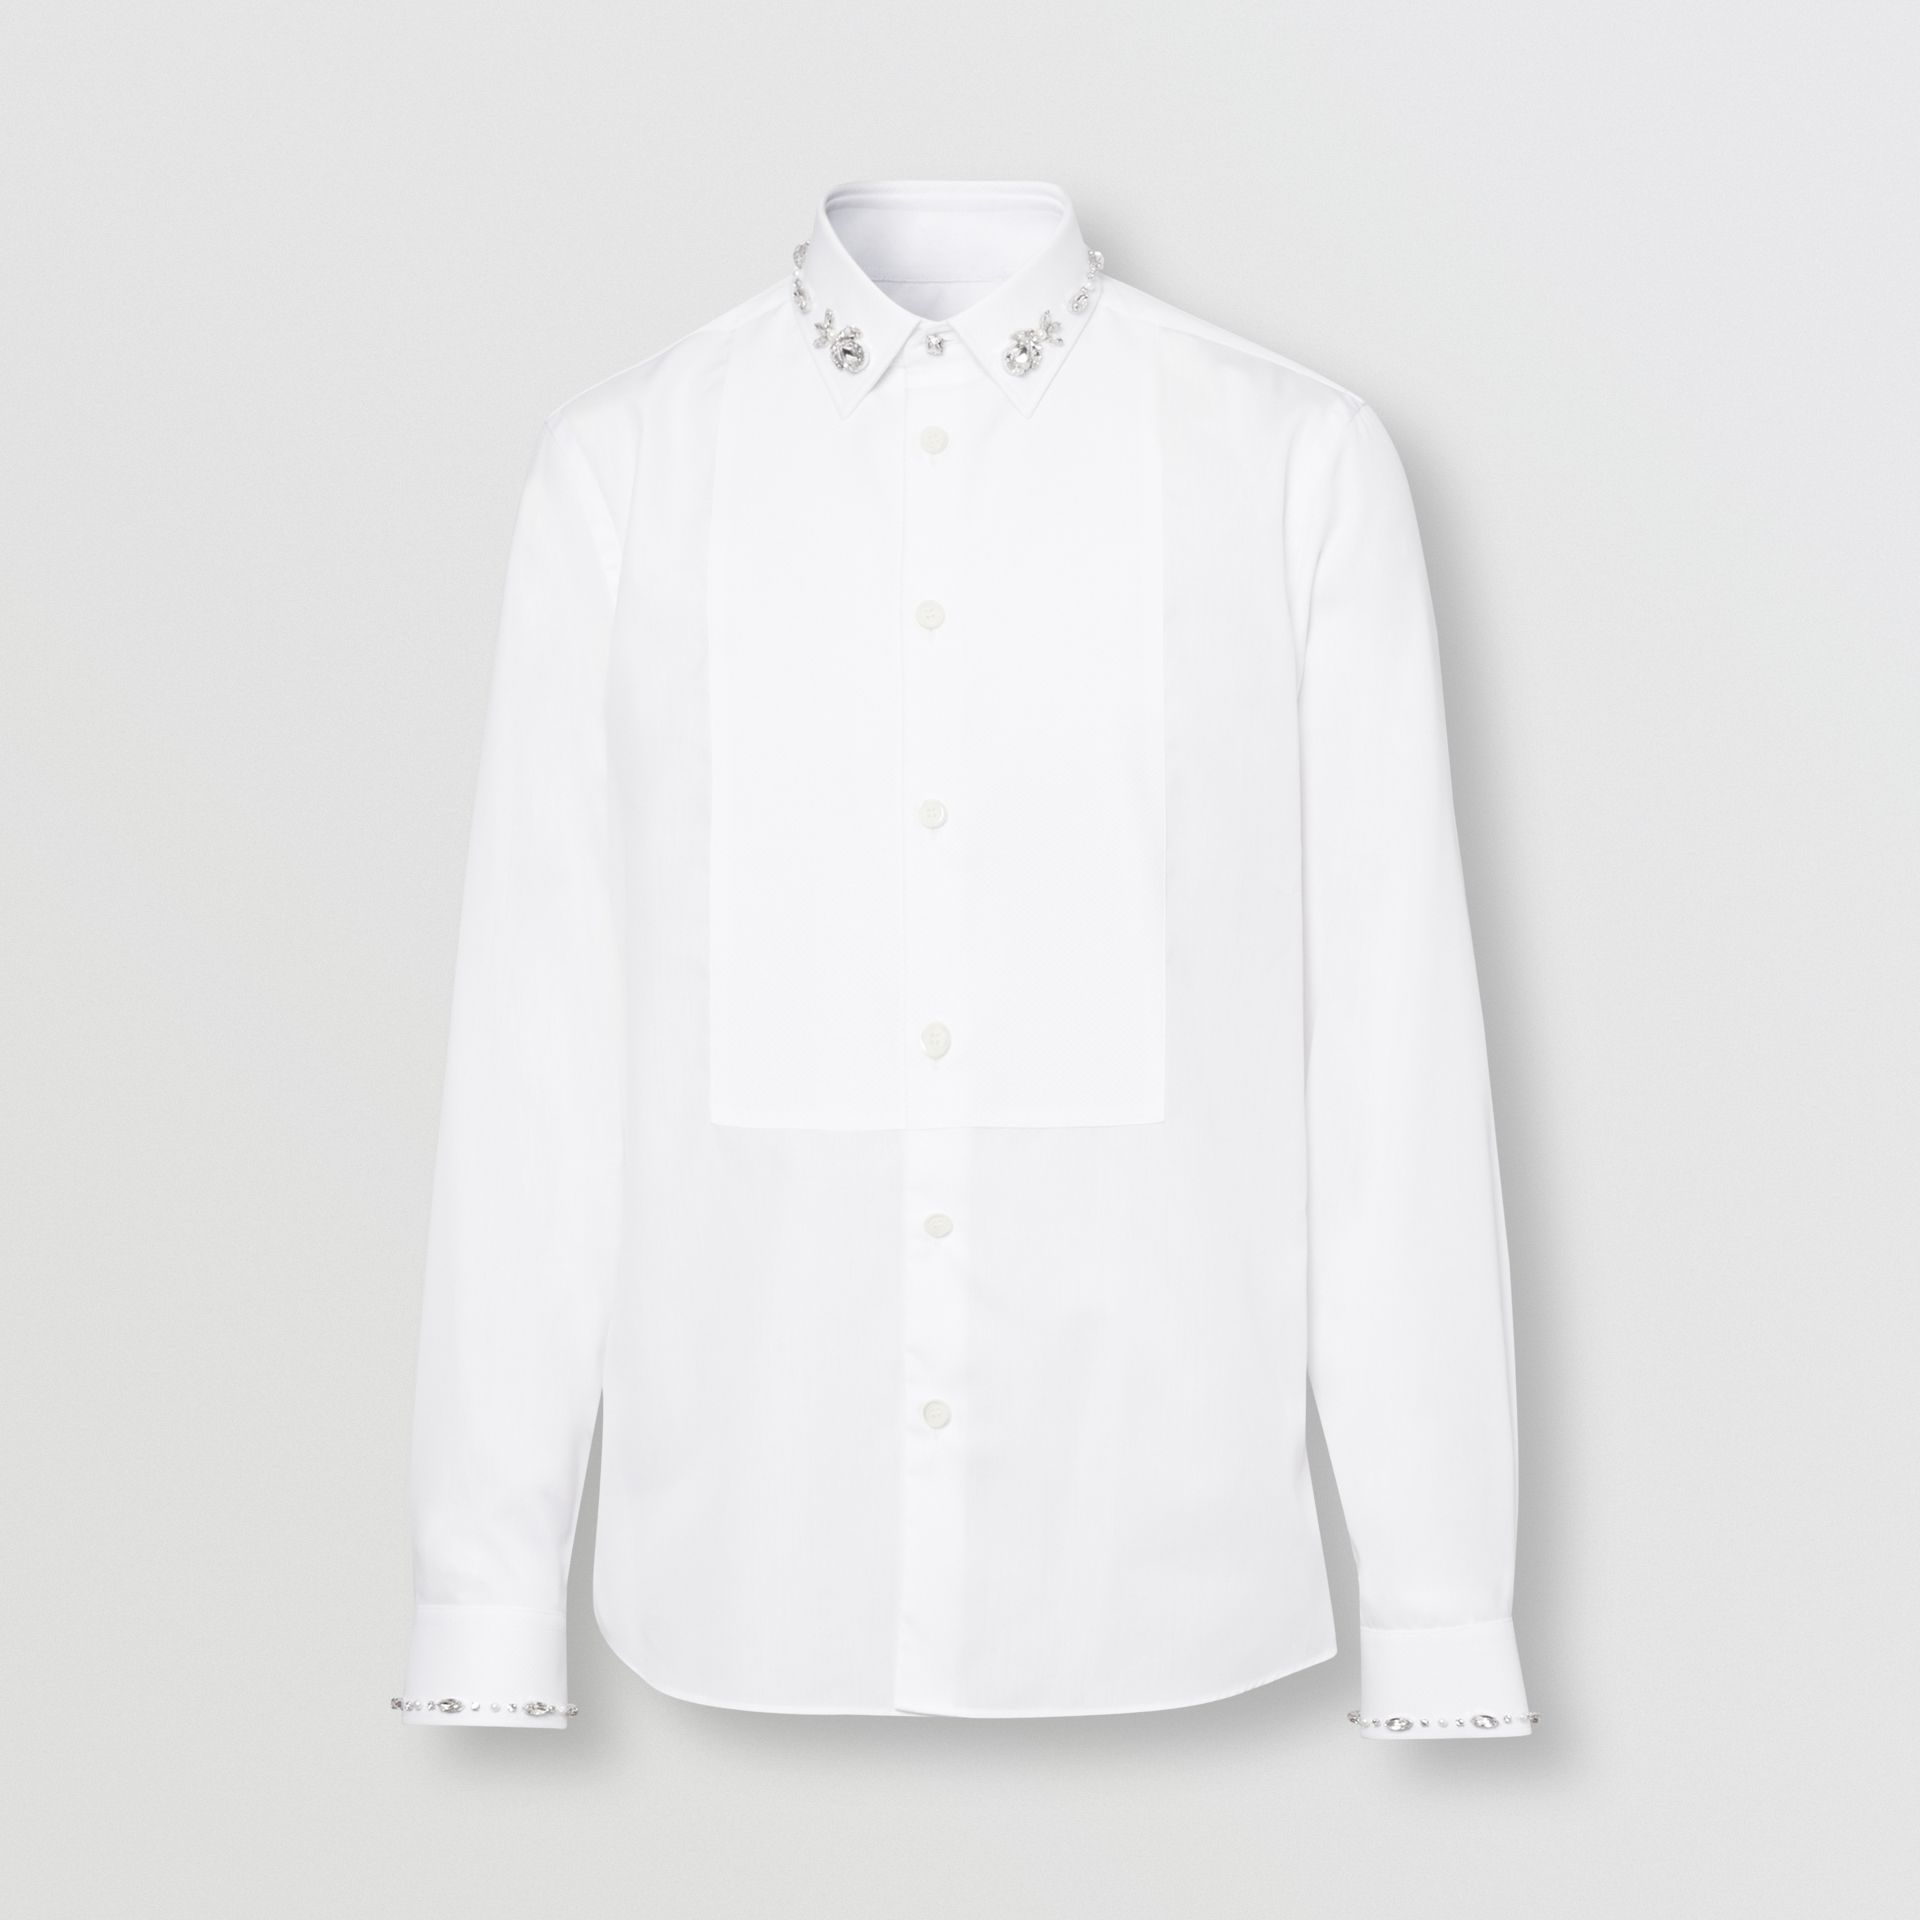 Slim Fit Embellished Cotton Poplin Shirt in White - Men | Burberry Hong Kong S.A.R - gallery image 3